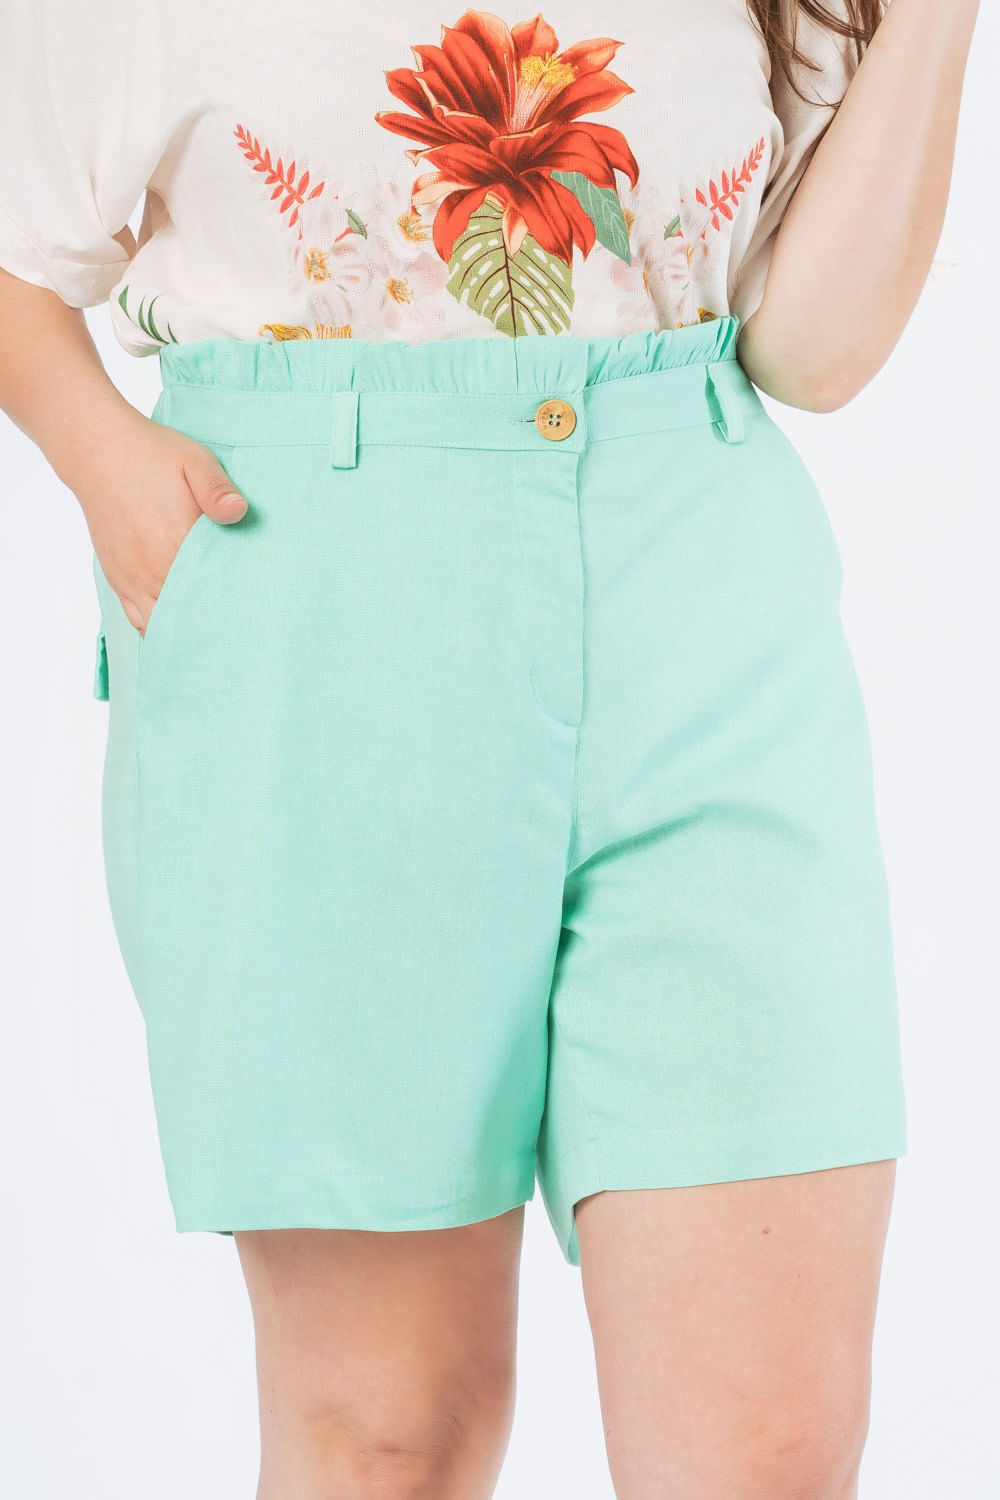 shorts_clochard_linho_plus_size_verde_agua_21914_3_20201203115927